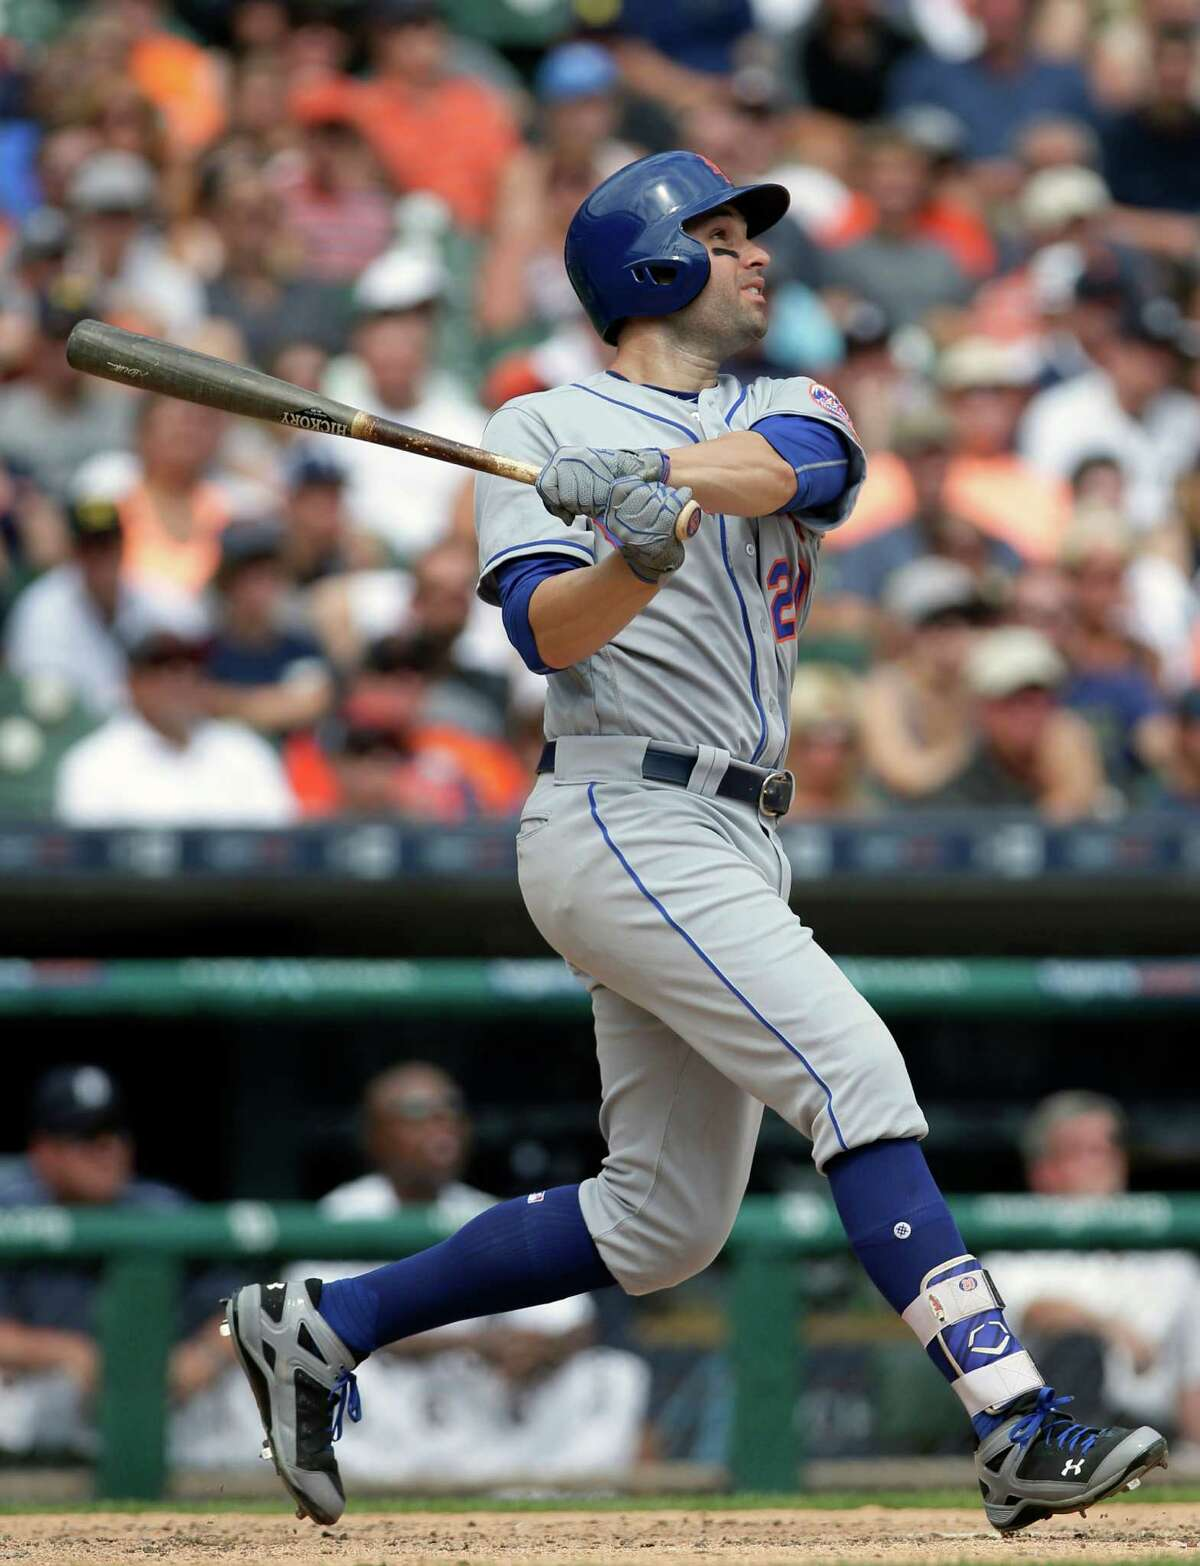 New York Mets' Neil Walker hits a two-run home run against the Detroit Tigers during the ninth inning of an interleague baseball game Sunday, Aug. 7, 2016, in Detroit. (AP Photo/Duane Burleson) ORG XMIT: MIDB107